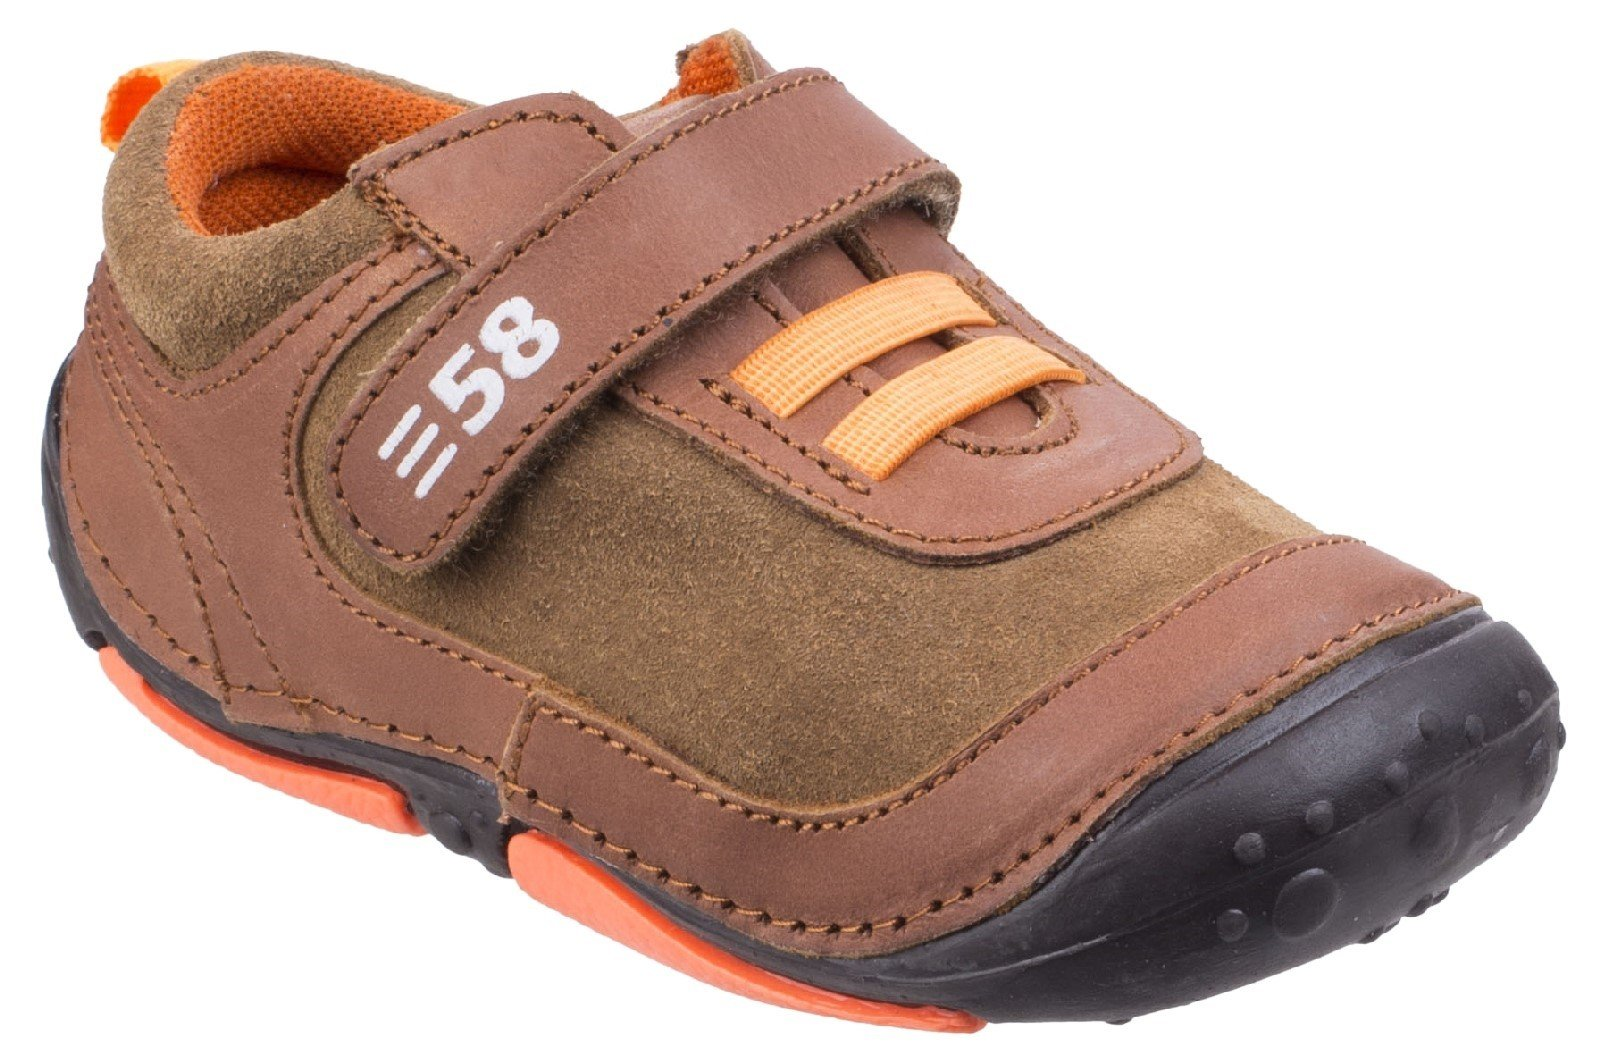 Hush Puppies Men's Harry Touch Fastening Trainer Various Colours 26391 - Brown 2